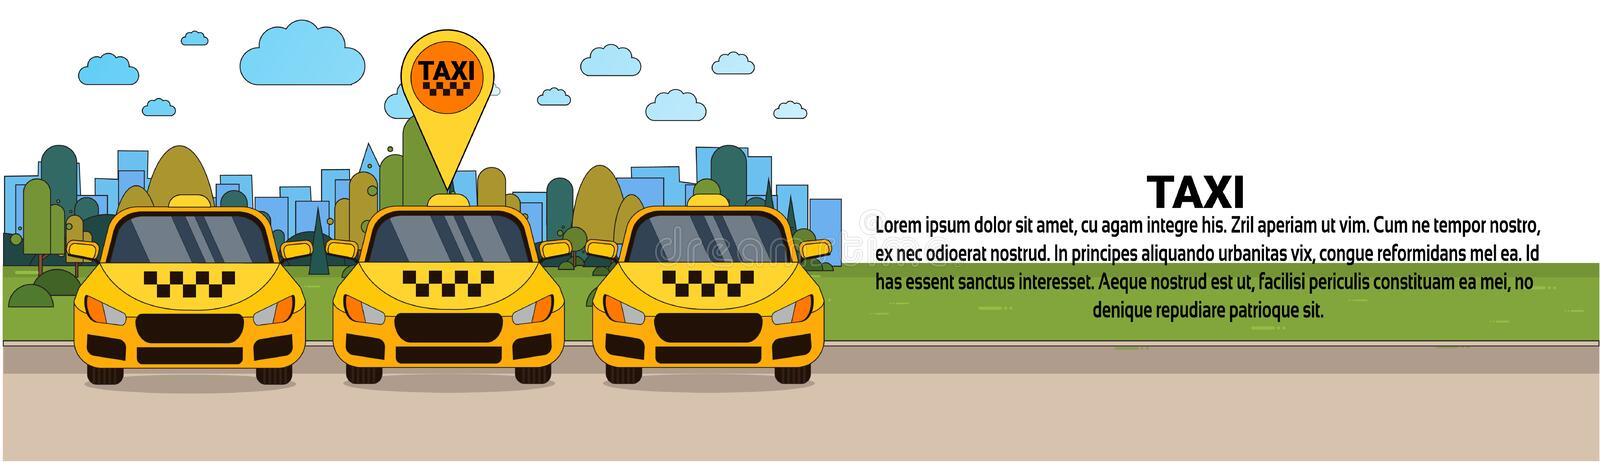 Set of Yellow Taxi Cars With Gps Location Pointer Online Cab Service Concept Horizontal Banner. Flat Vector Illustration vector illustration